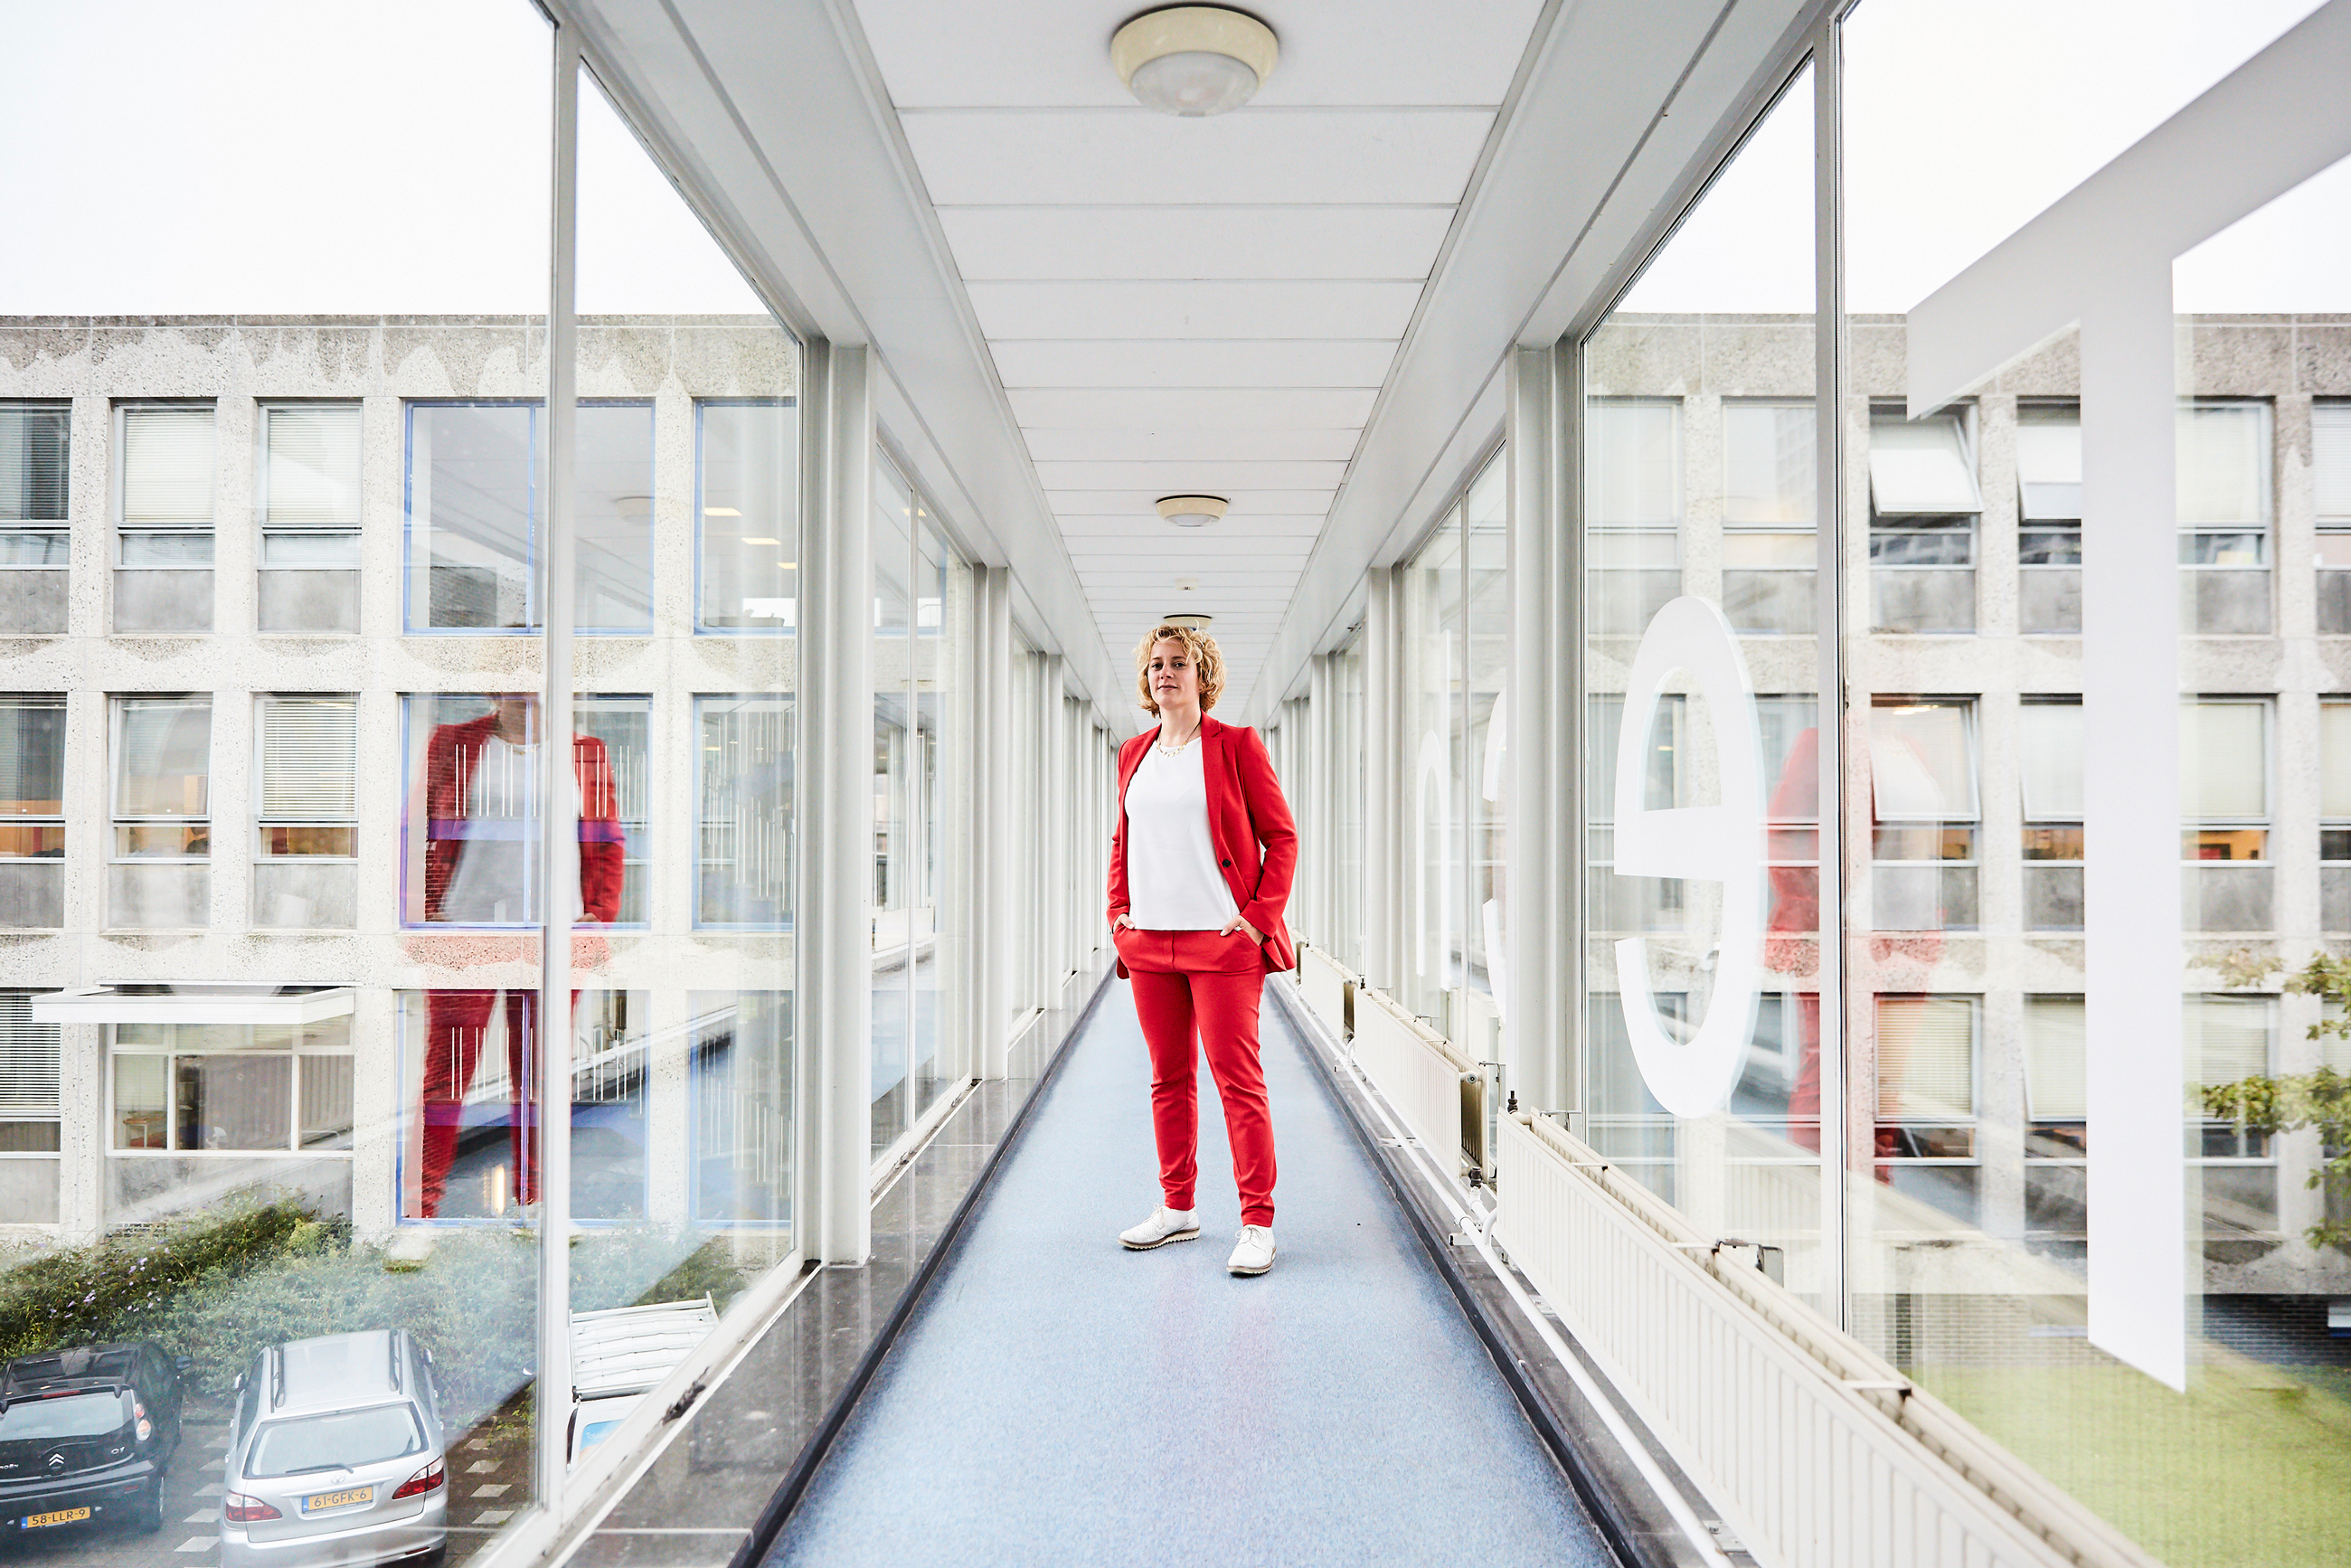 Stephanie Wehner in a red suit standing in a glass-paneled corridor at Delft University of Technology in the Netherlands. Her reflection appears in the glass to the right and left.]